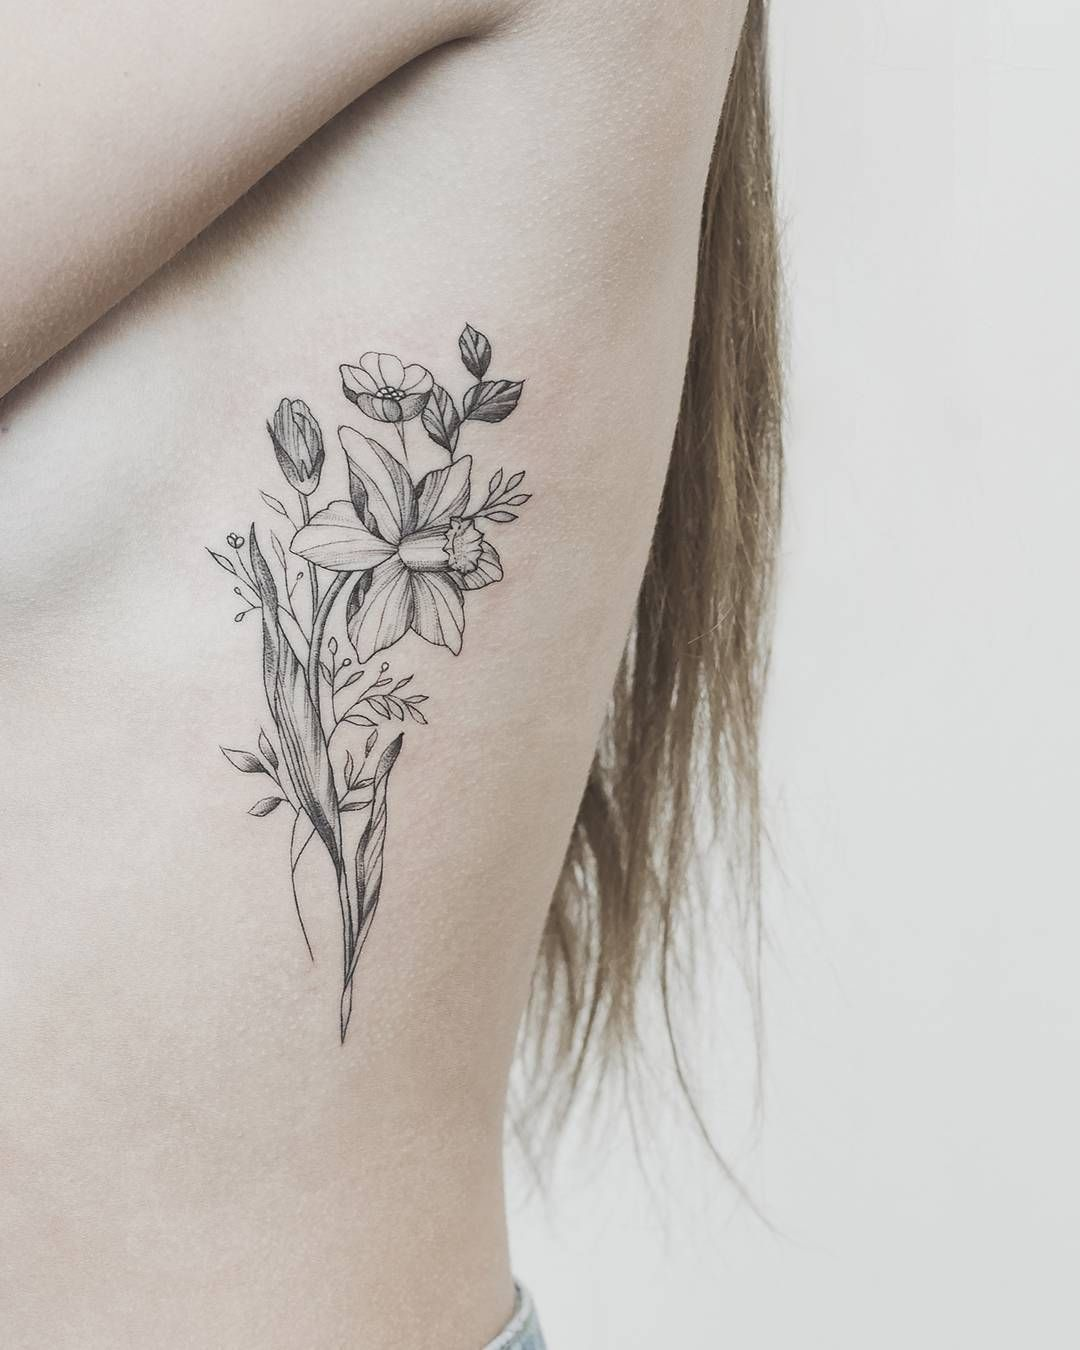 Instagram Birth Flower Tattoos Narcissus Flower Tattoos Daffodil Tattoo